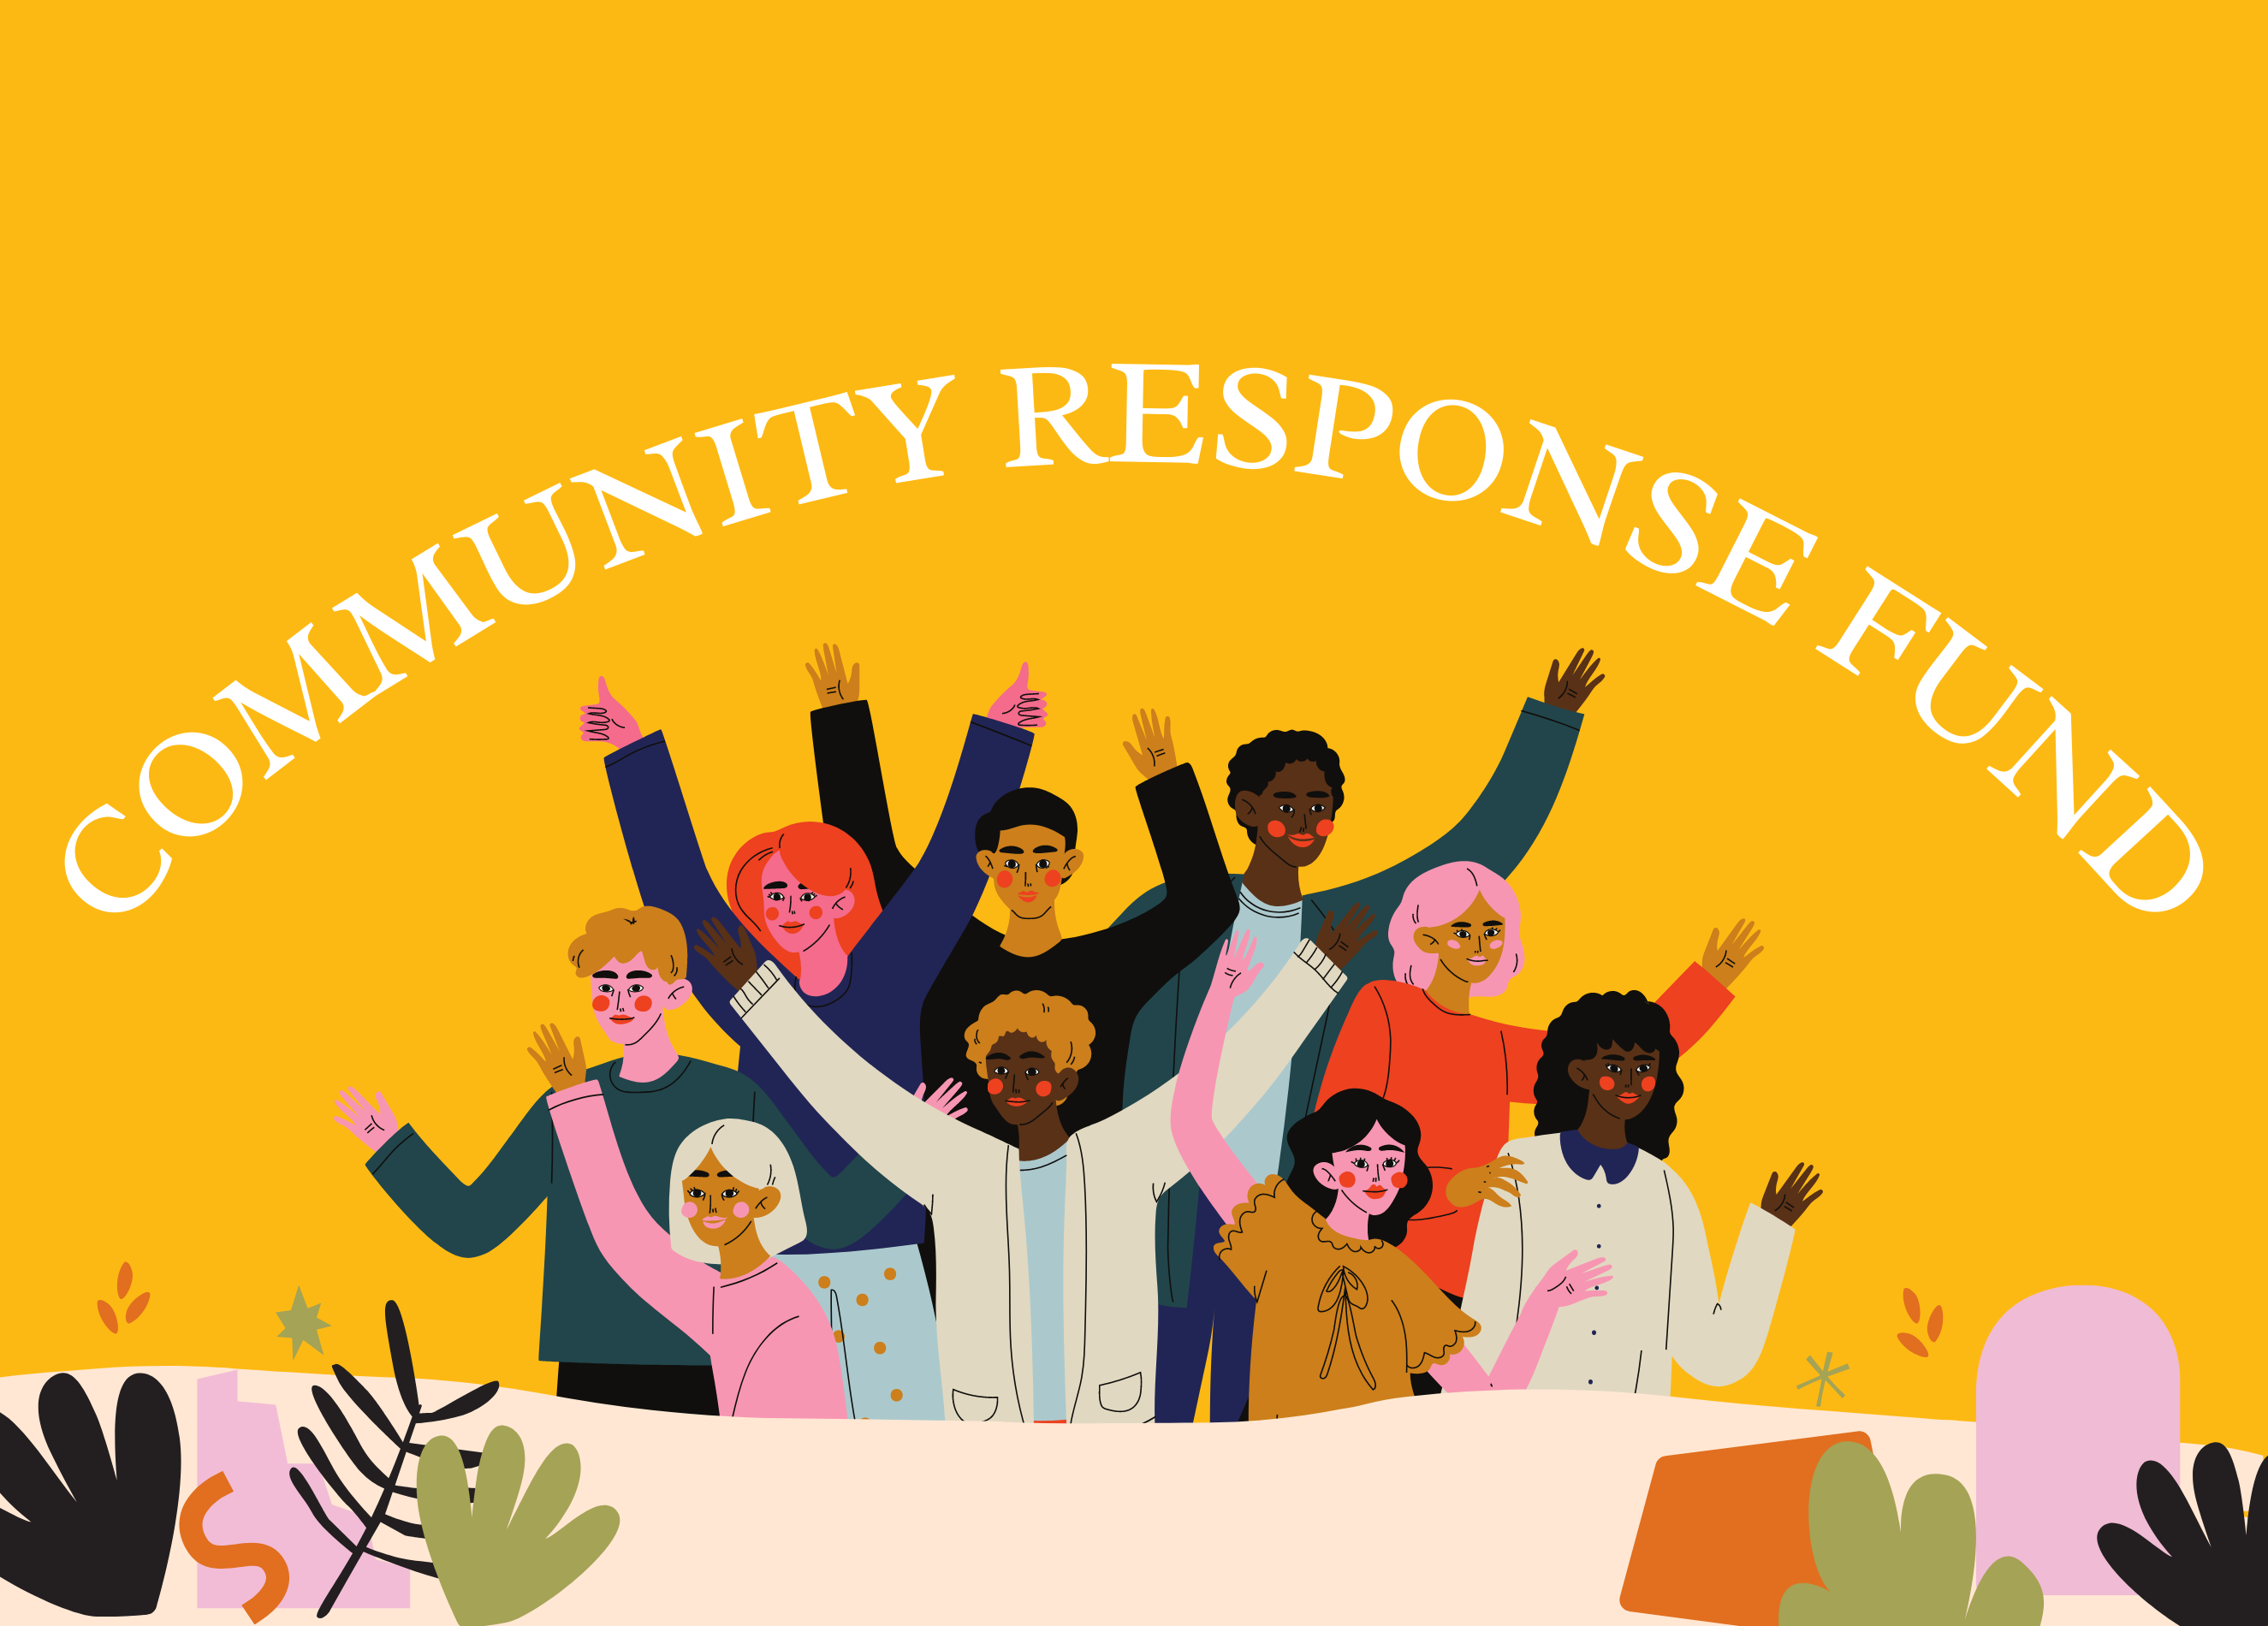 Spring Appeal Community Response Fund